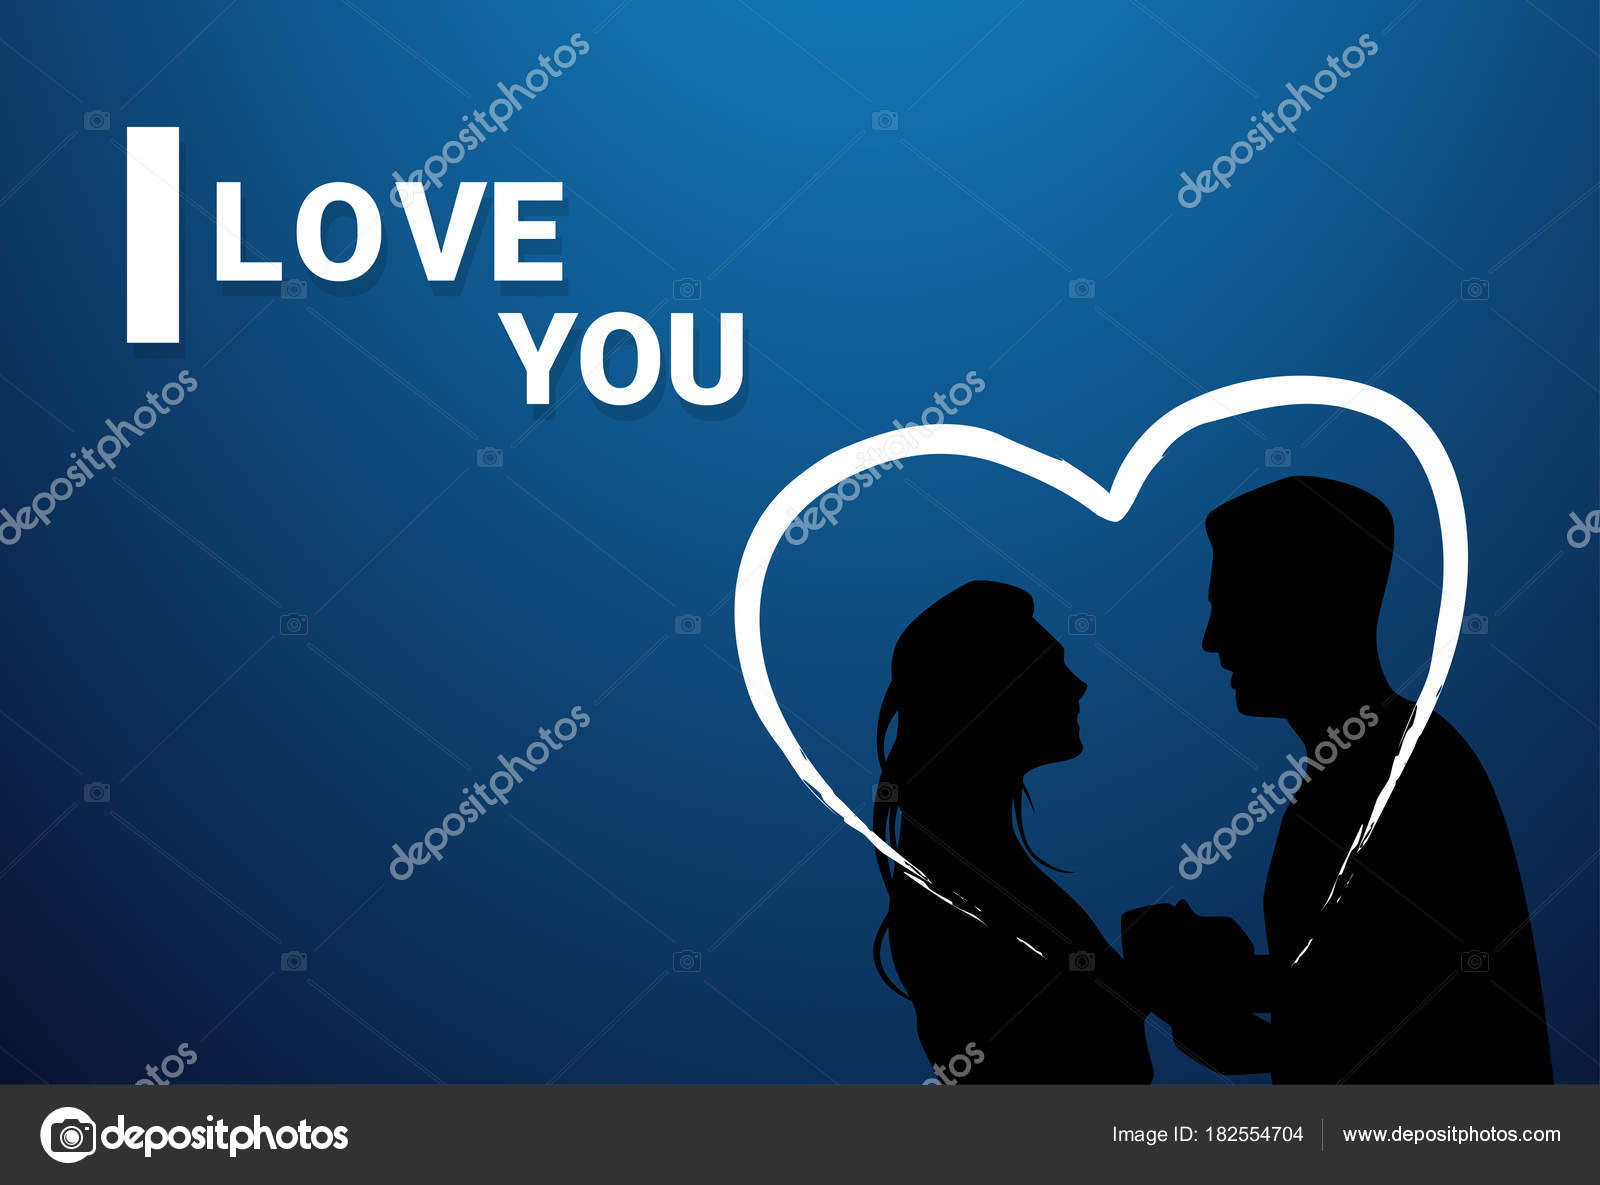 I Love You Greeting Card With Couple Silhouettes Holding Hands In